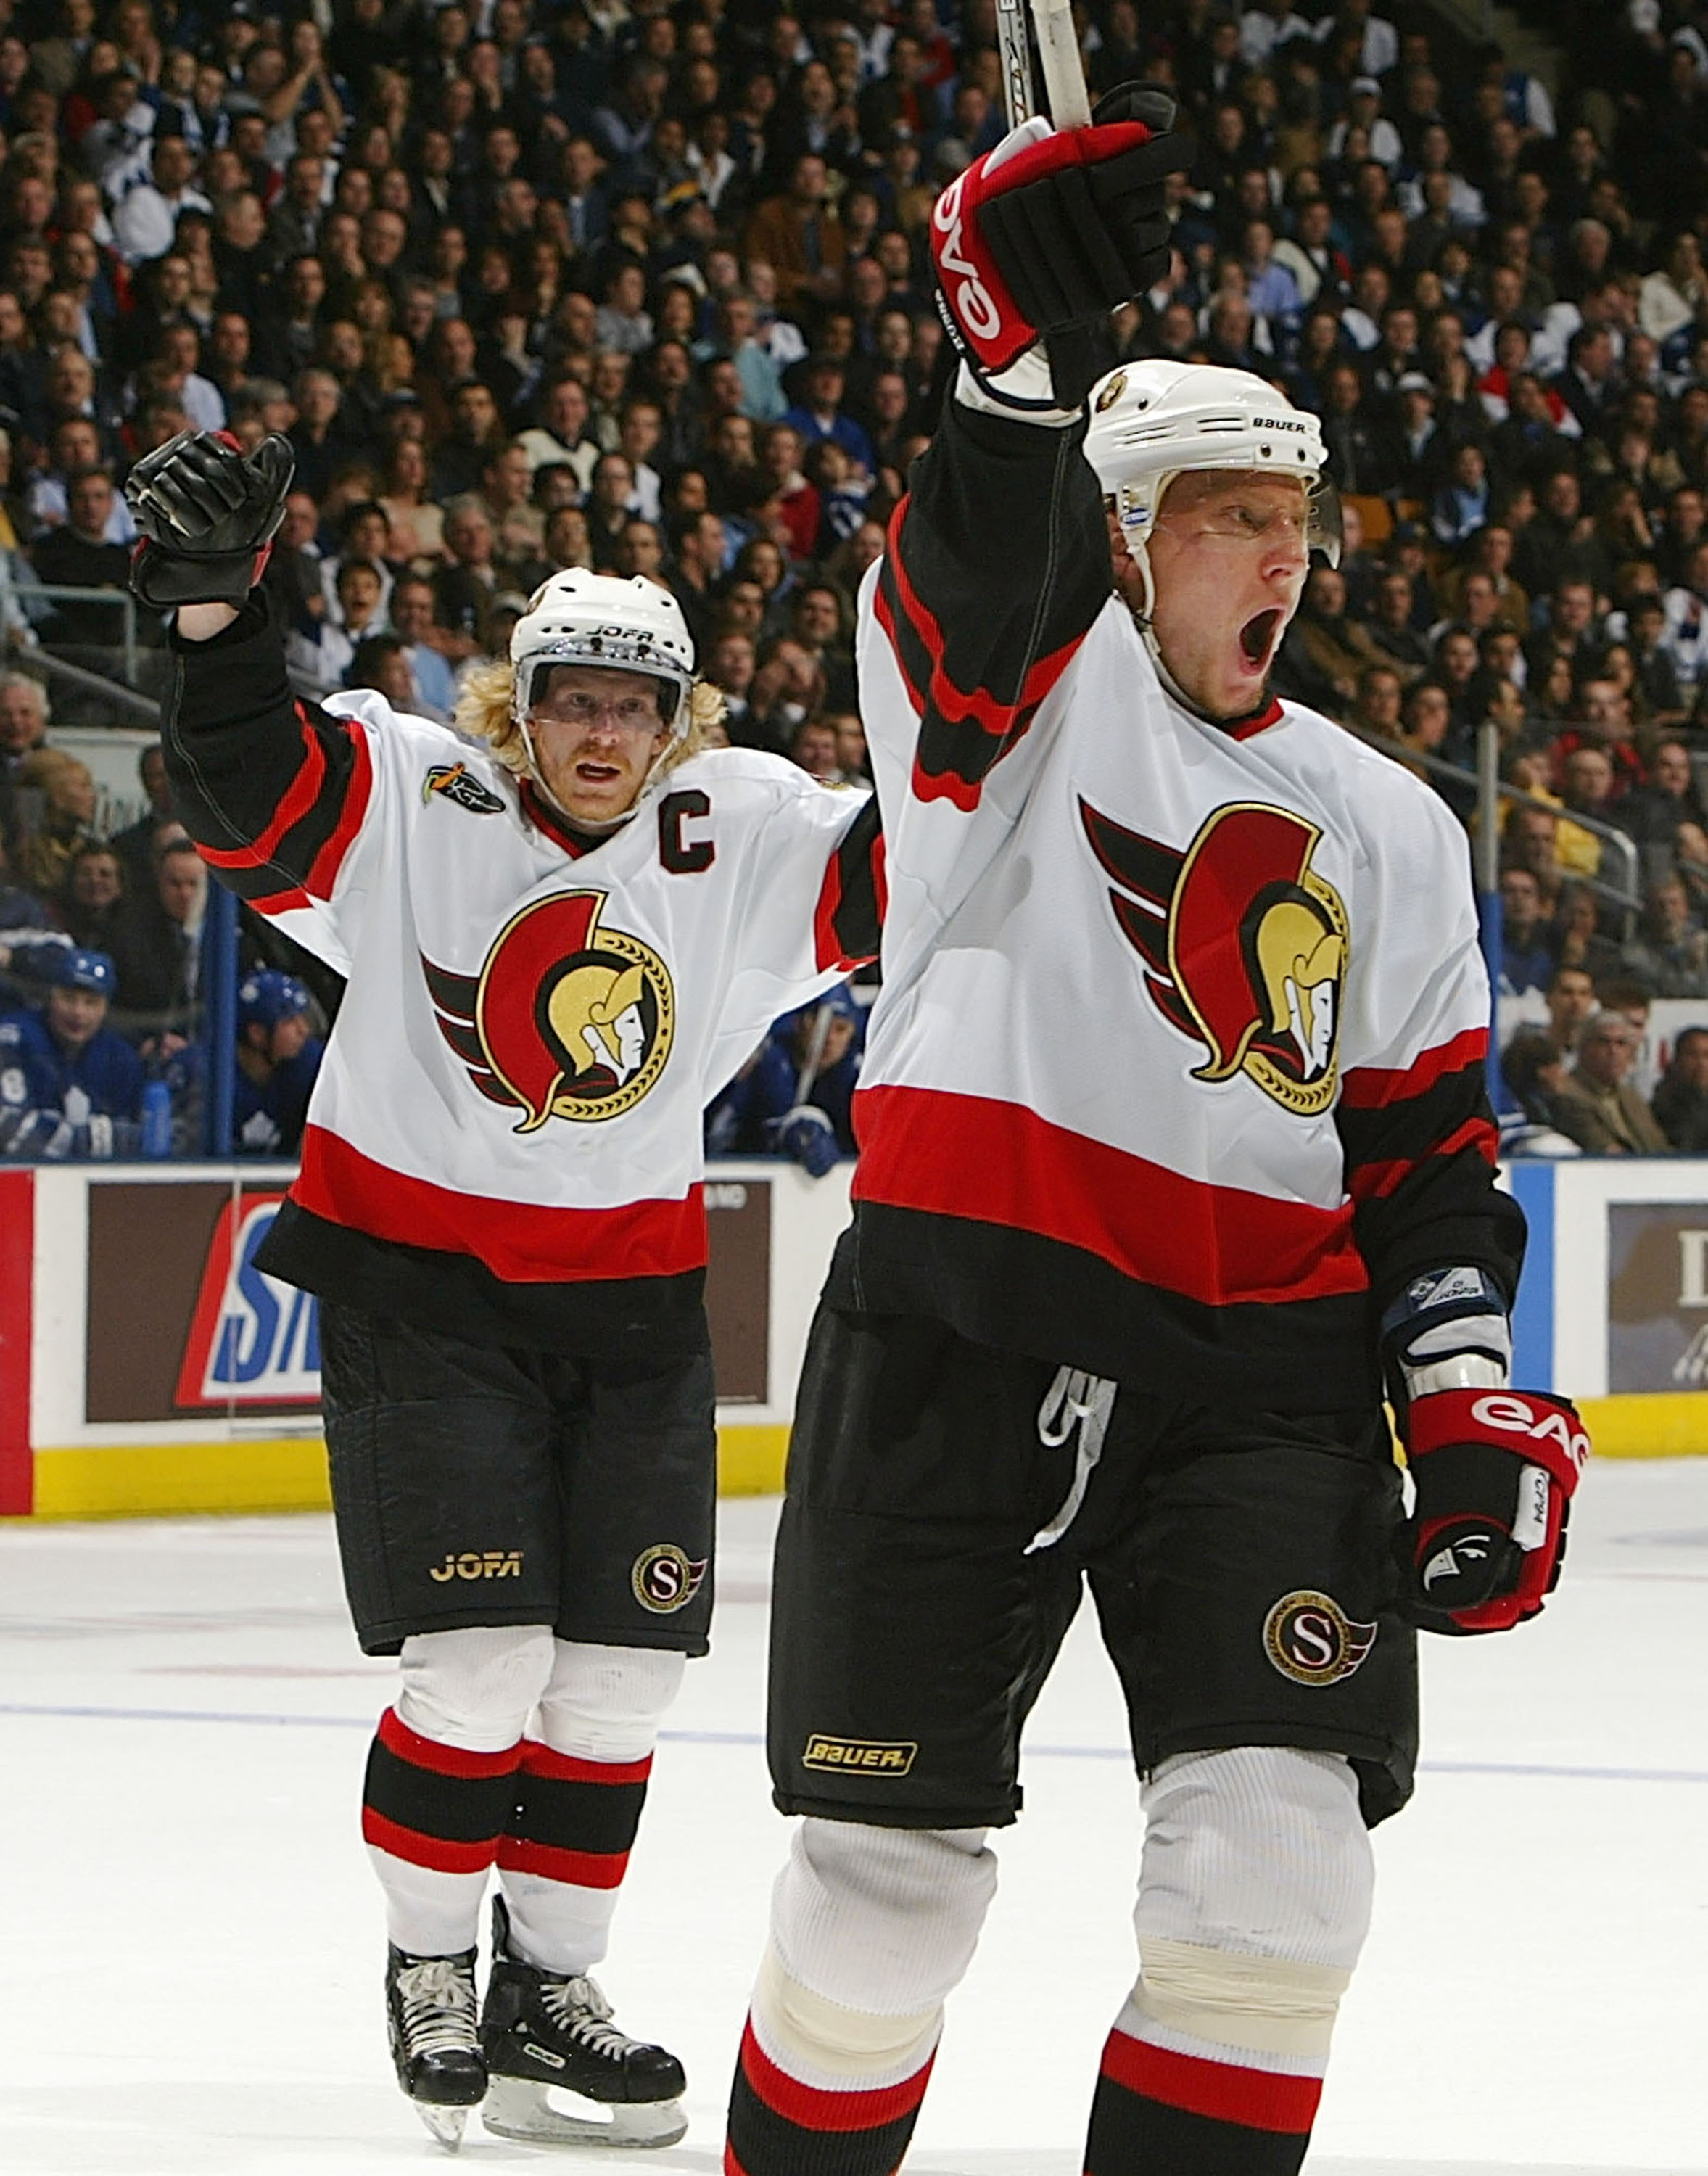 I don't know what I like more, those beautiful jerseys or Hossa's opera attempt